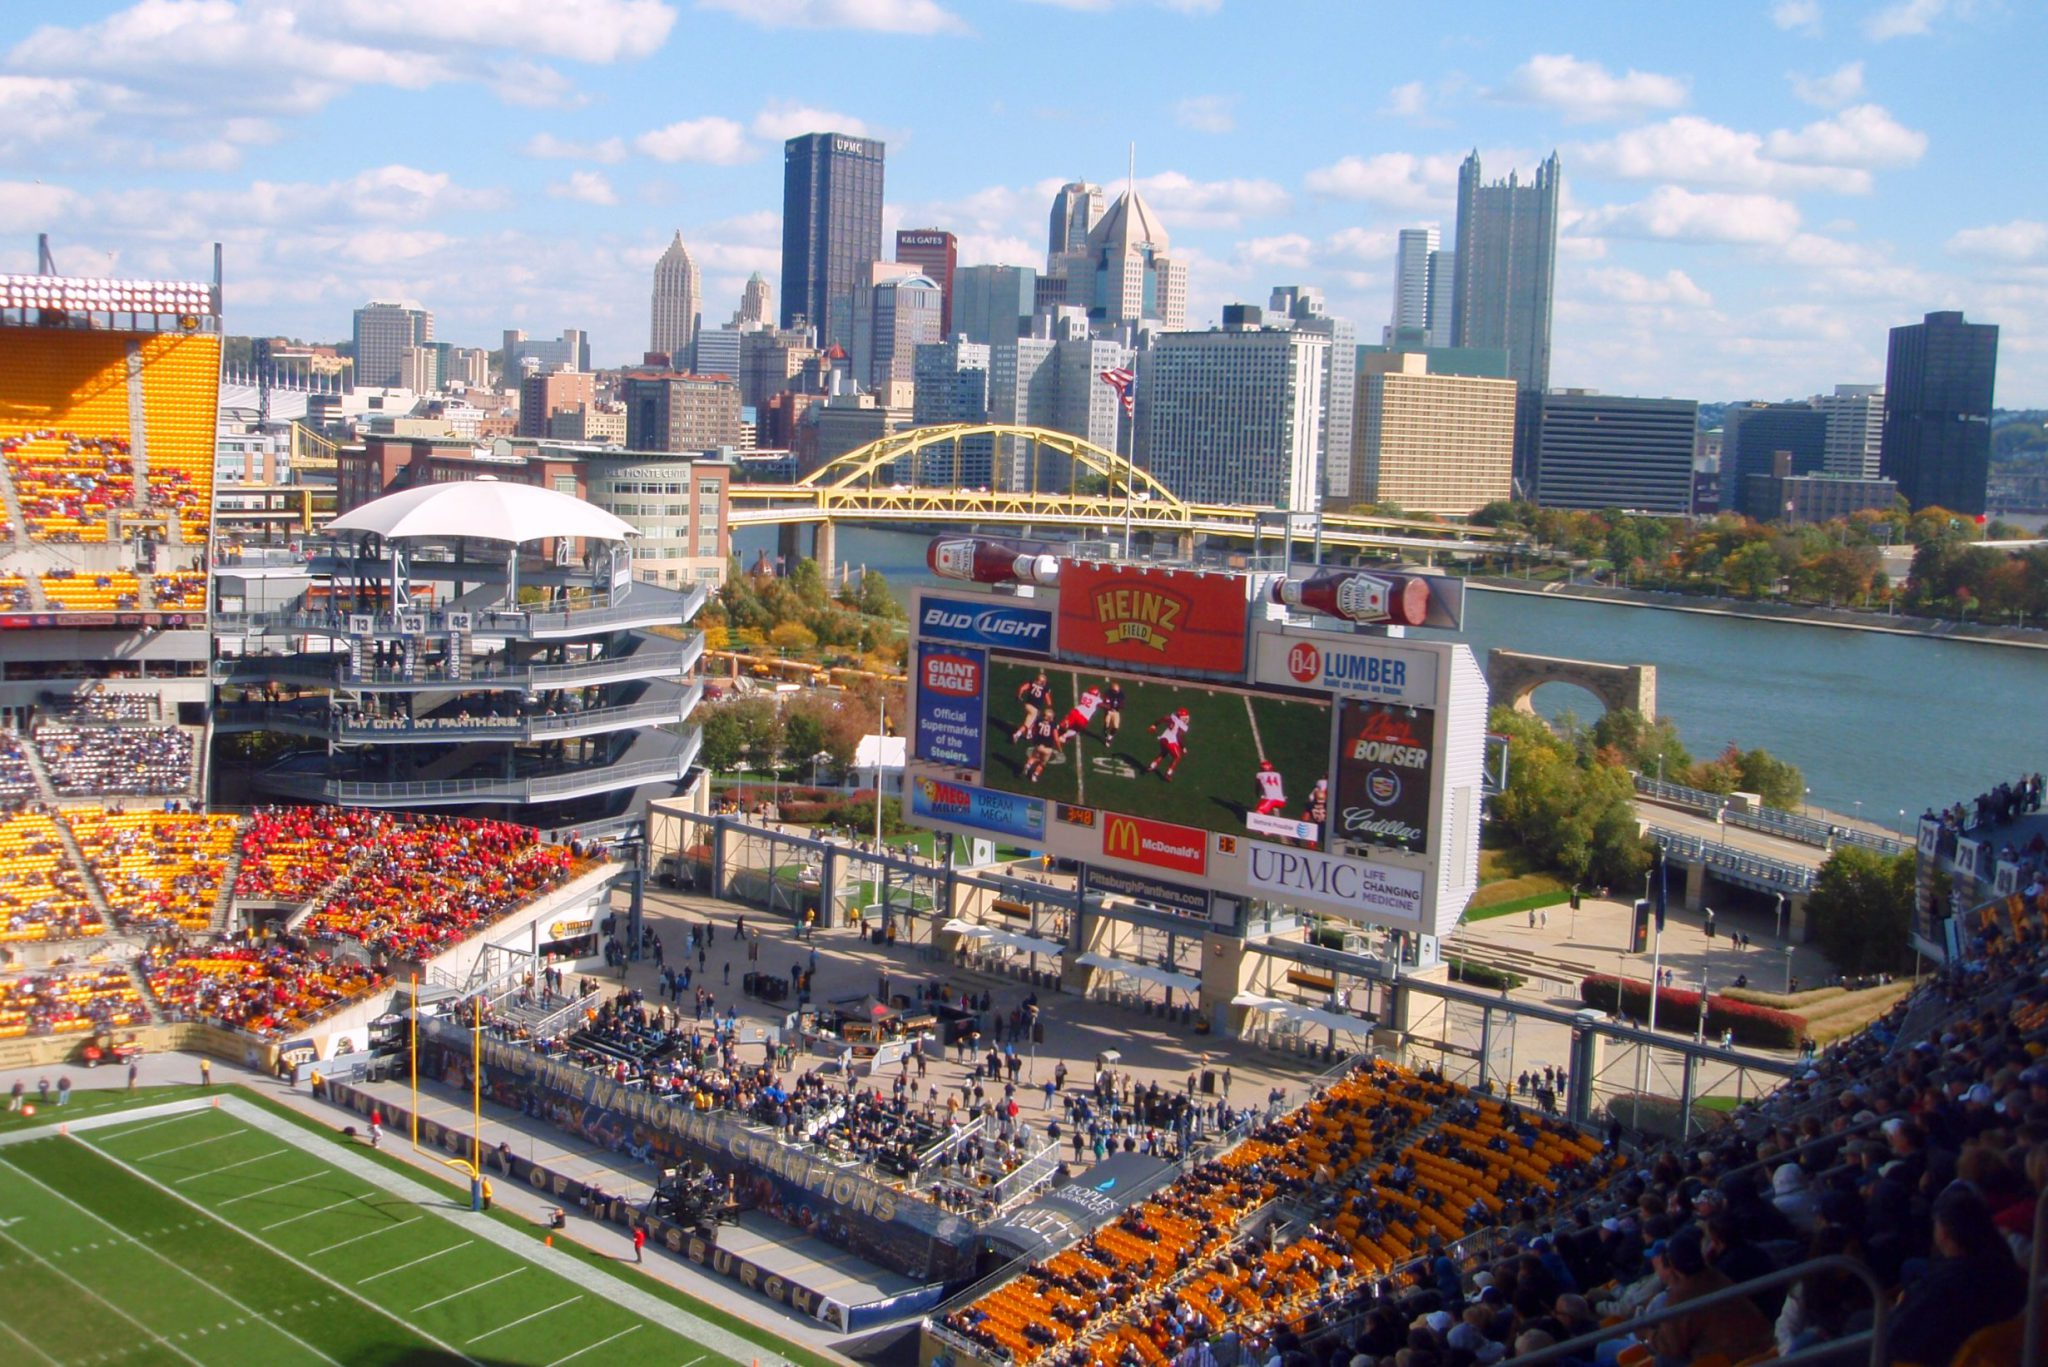 View of Downtown Pittsburgh and River from Heinz Field